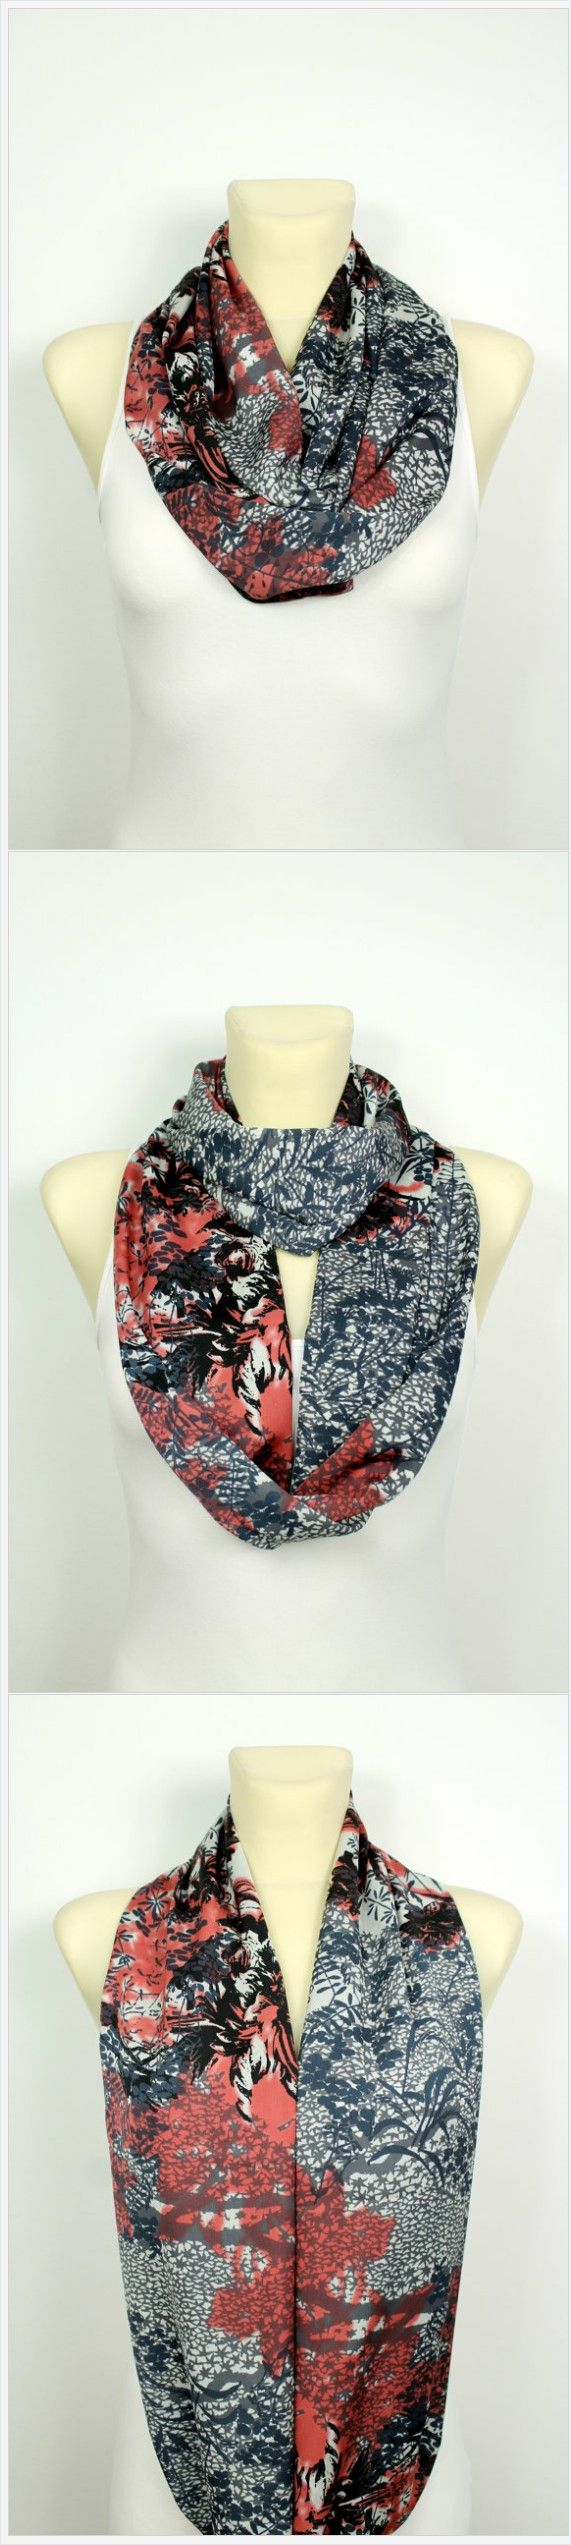 Do you like unique fashion designs? If yes then this handmade scarf is something to consider. It is 100% handmade from an original Italian silky satin fabric. We produce only limited edition of scarves so you can be sure that the items are original and one of a kind. Perfect birthday gift for a women, mom, wife, girlfriend, daughter or sister! Click through to see more handmade scarves at our Etsy Shop